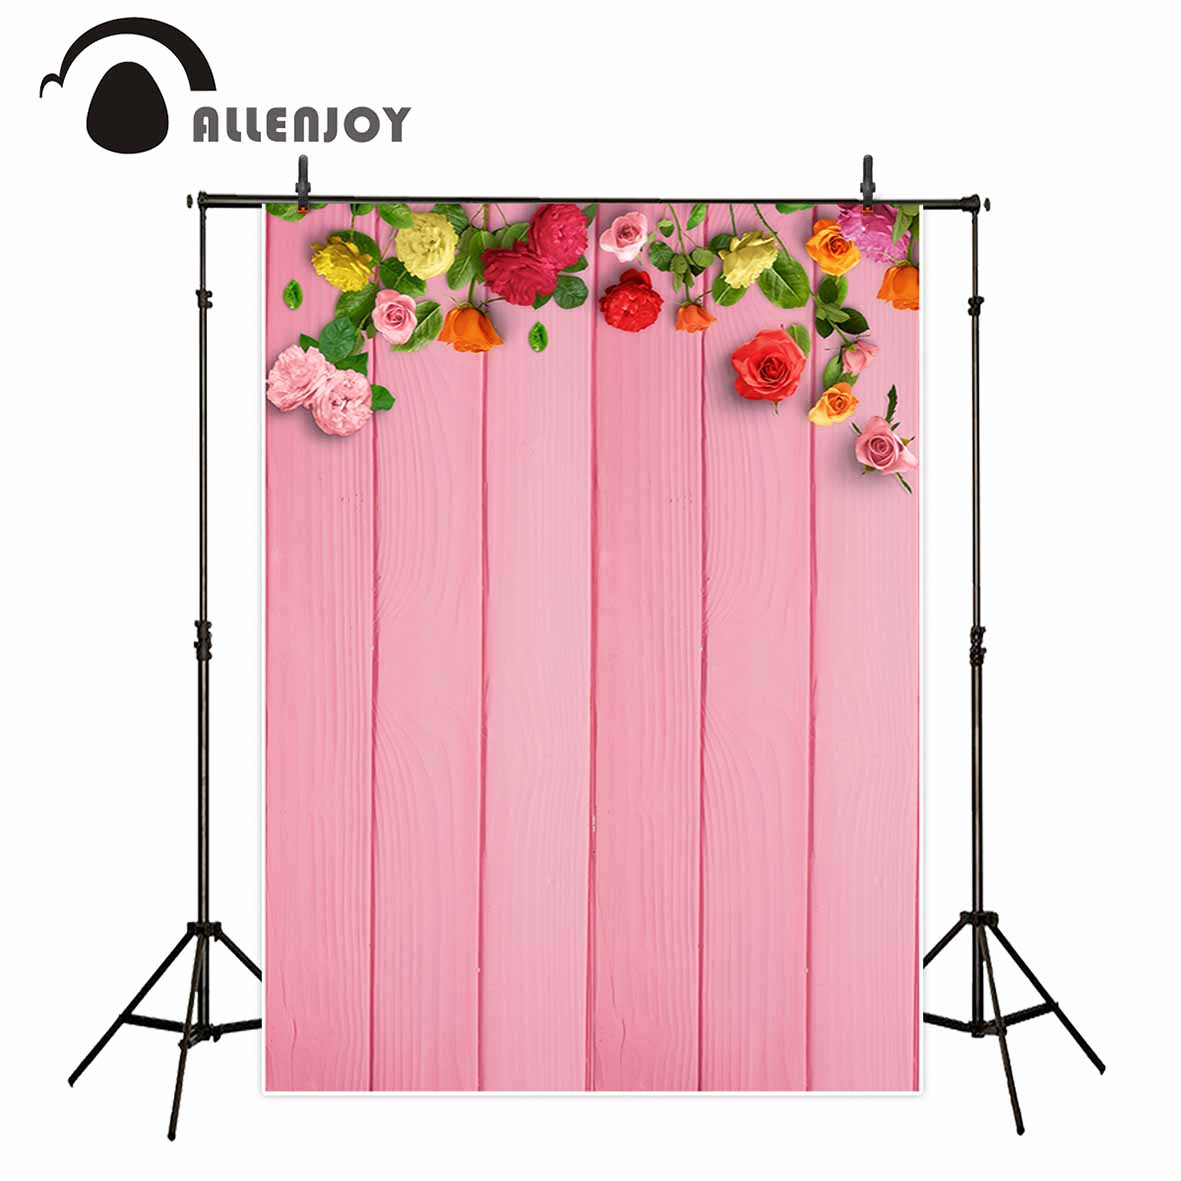 Allenjoy wedding flowers pink wood floor photography backdrops princess beautiful board party baby shower photo backgrounds allenjoy photography backdrops love white wood board floor red hearts branches valentine s day wedding photo booth profissional